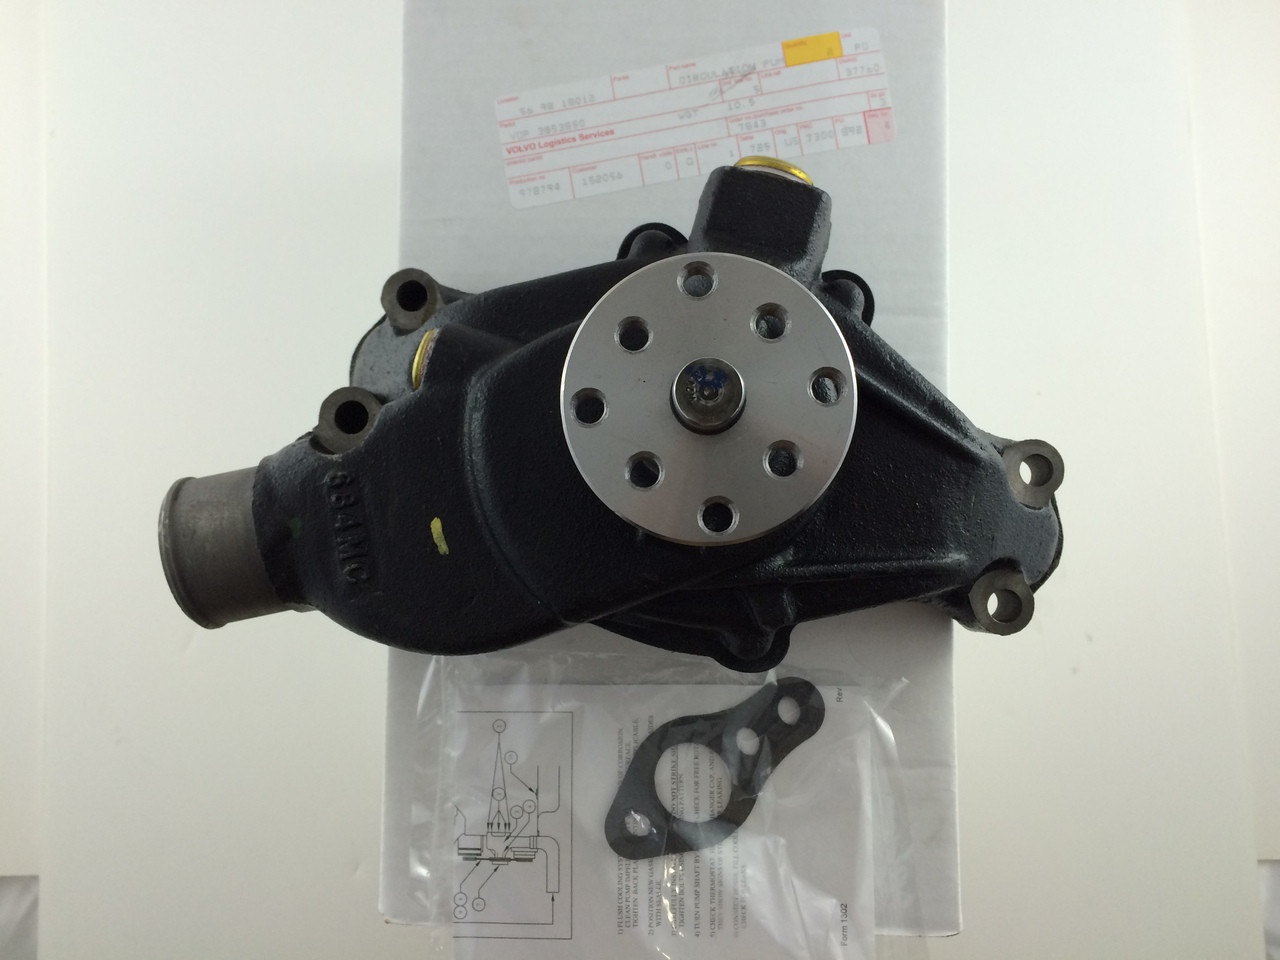 132 58 circulation water pump 3853850 in stock ready to ship cecil marine [ 1280 x 960 Pixel ]